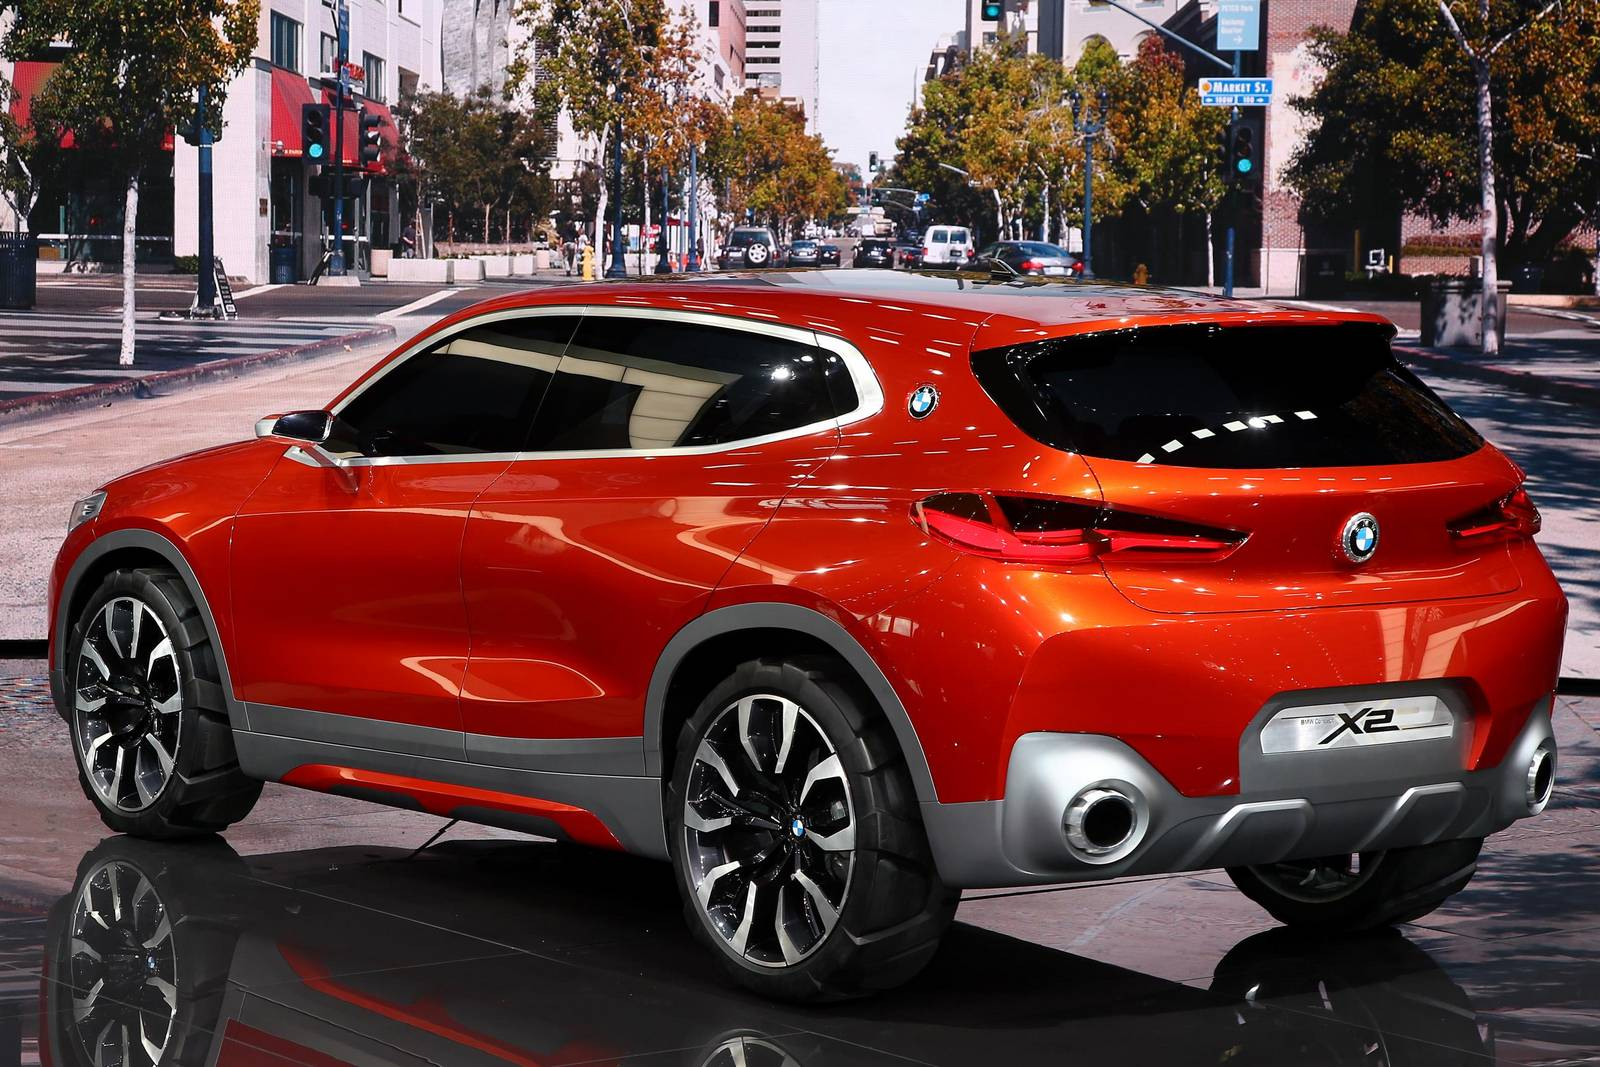 Paris 2016: BMW X2 Concept - GTspirit